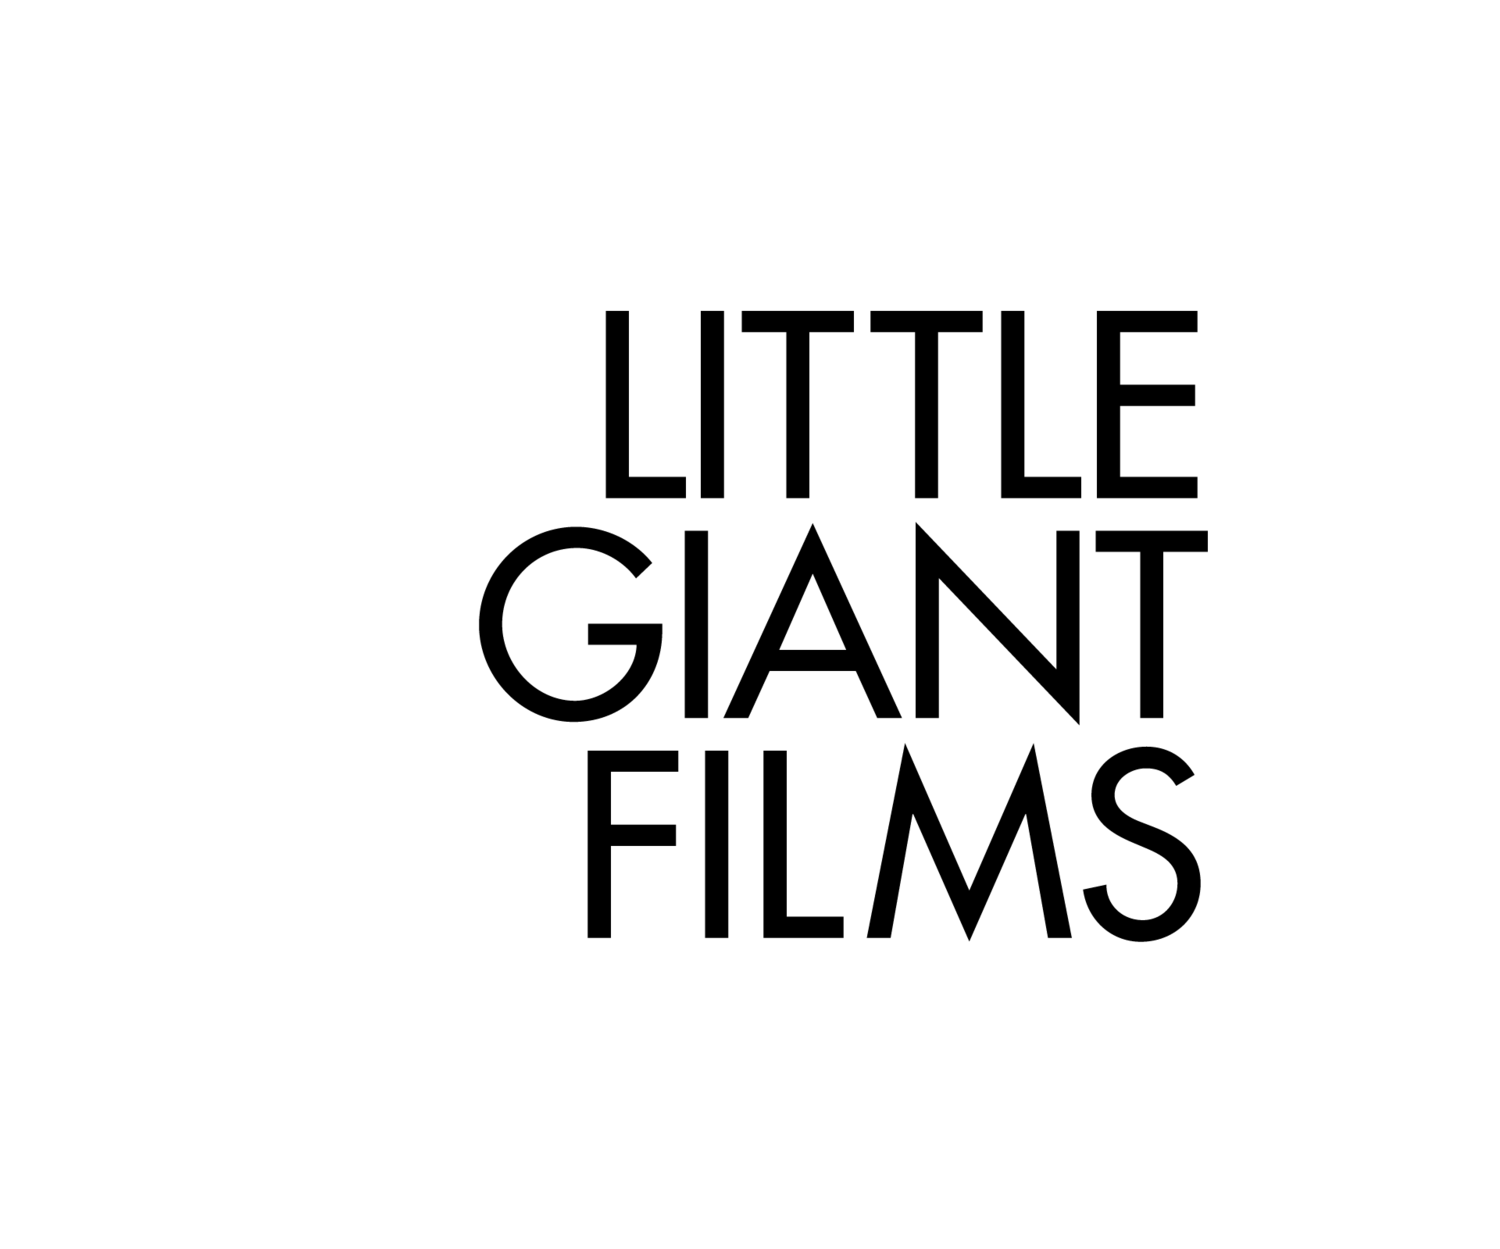 Little Giant Films is a boutique video production house from Northern Ireland.